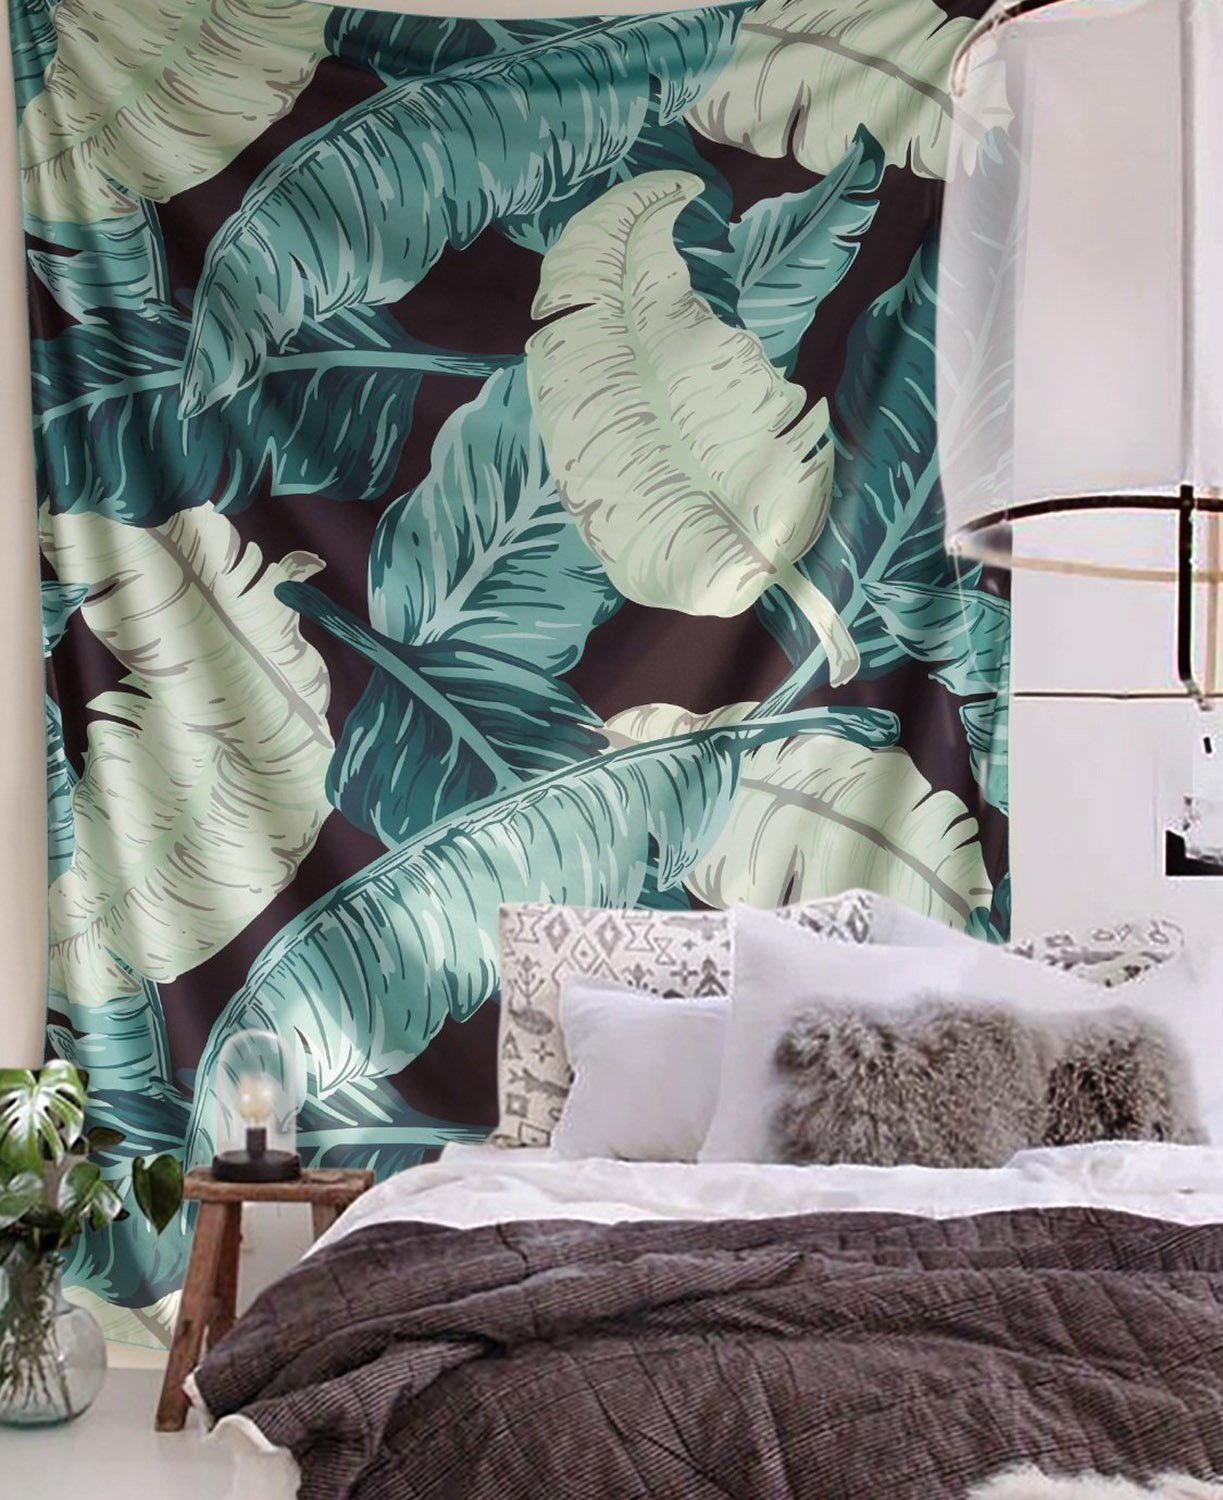 Banana Leaf Wall Tapestry Banana Tapestry Banana Leaf Tapestry Wall Hanging Wall Blanket Bohemian Tapestry Hippie Large Tapestry Indian Tapestry Tapestries Wall Hangings Beach Towels Home Decor